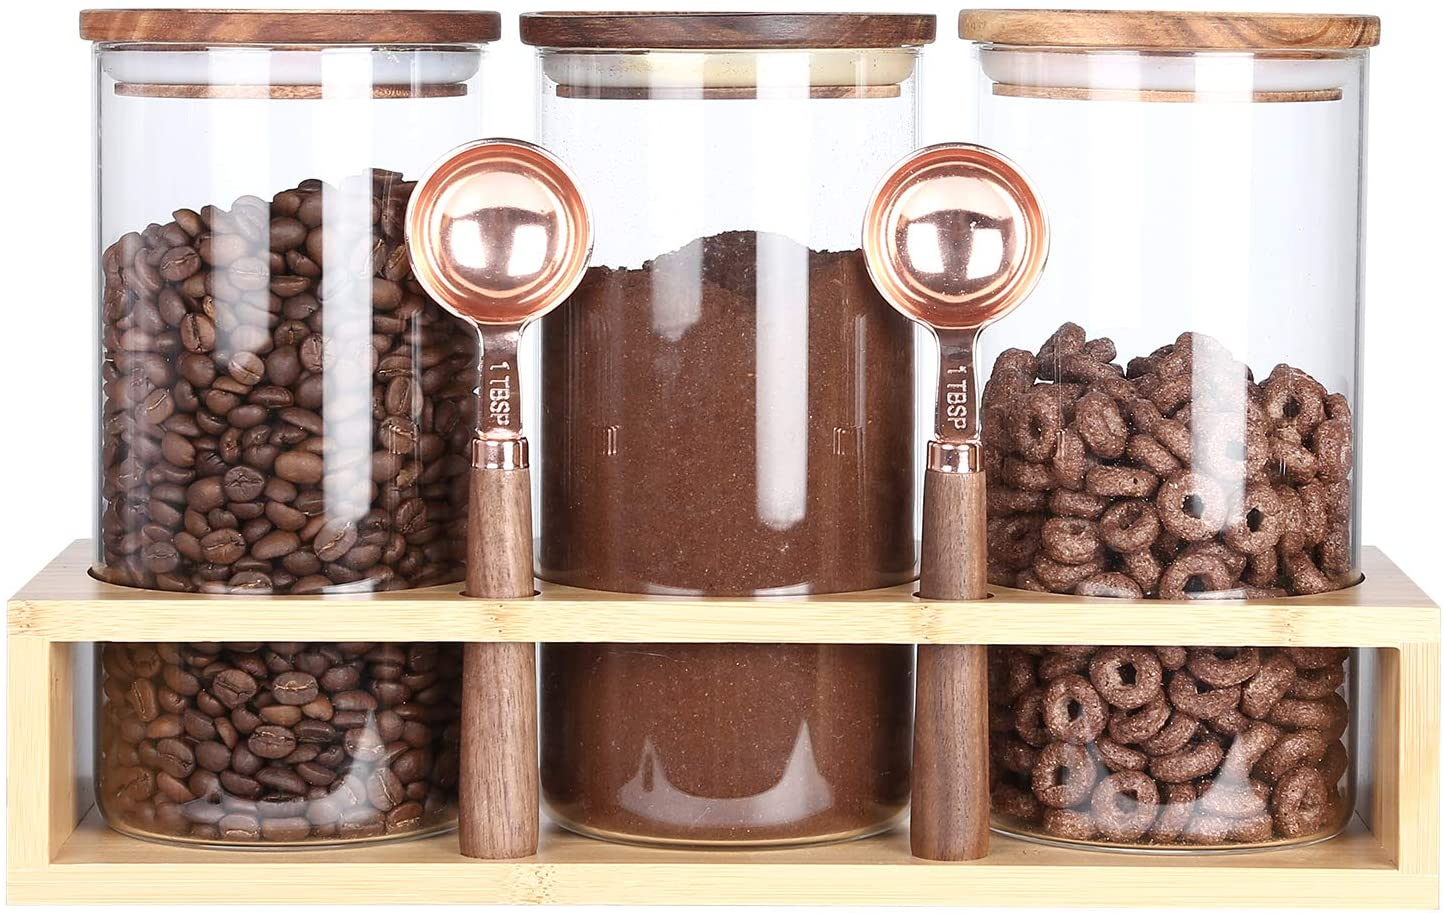 KKC Borosilicate Glass Canisters for Kitchen Counter,Glass Storage Jars with Spoons ,Airtight Countertop Glass Storage Containers with Wood Lids for Coffee Beans,Cookie,39 FLoz,Pack of 3